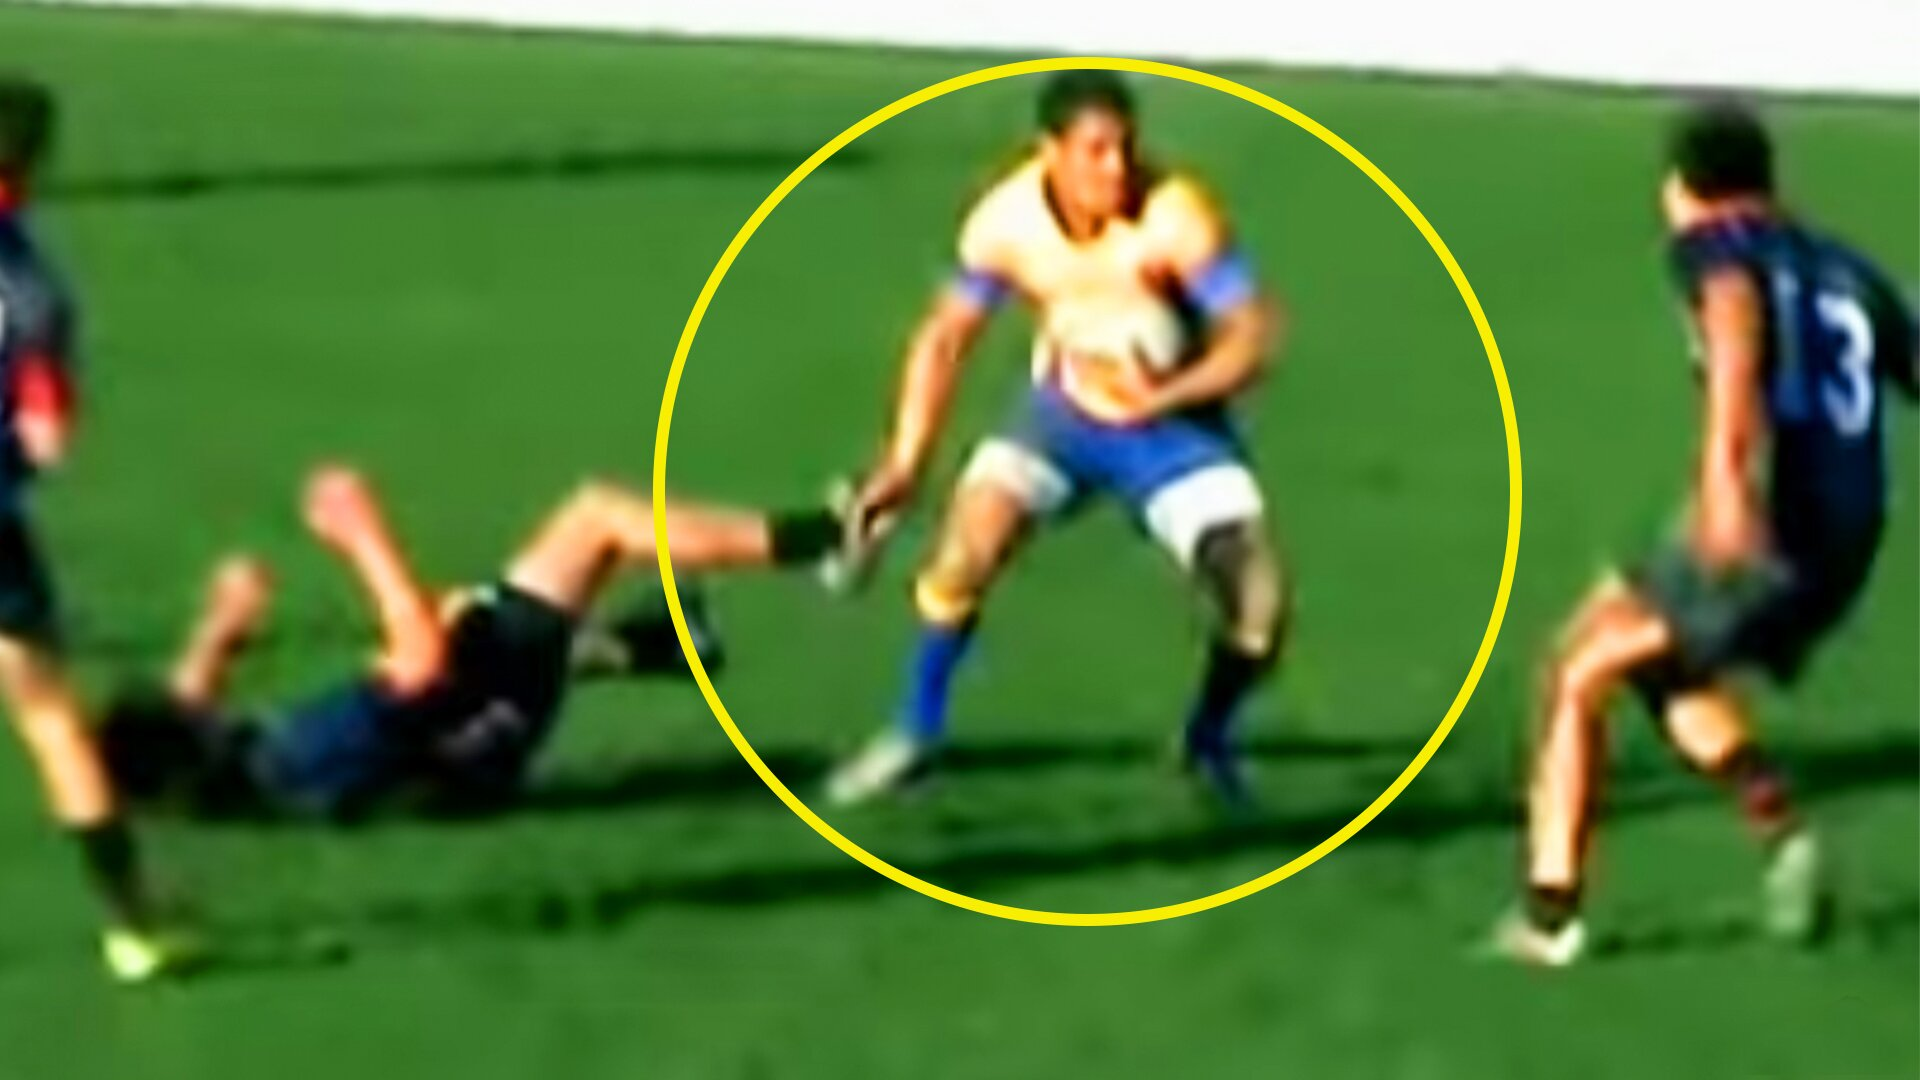 We've found footage of the Savea brothers in high school and it's INSANE